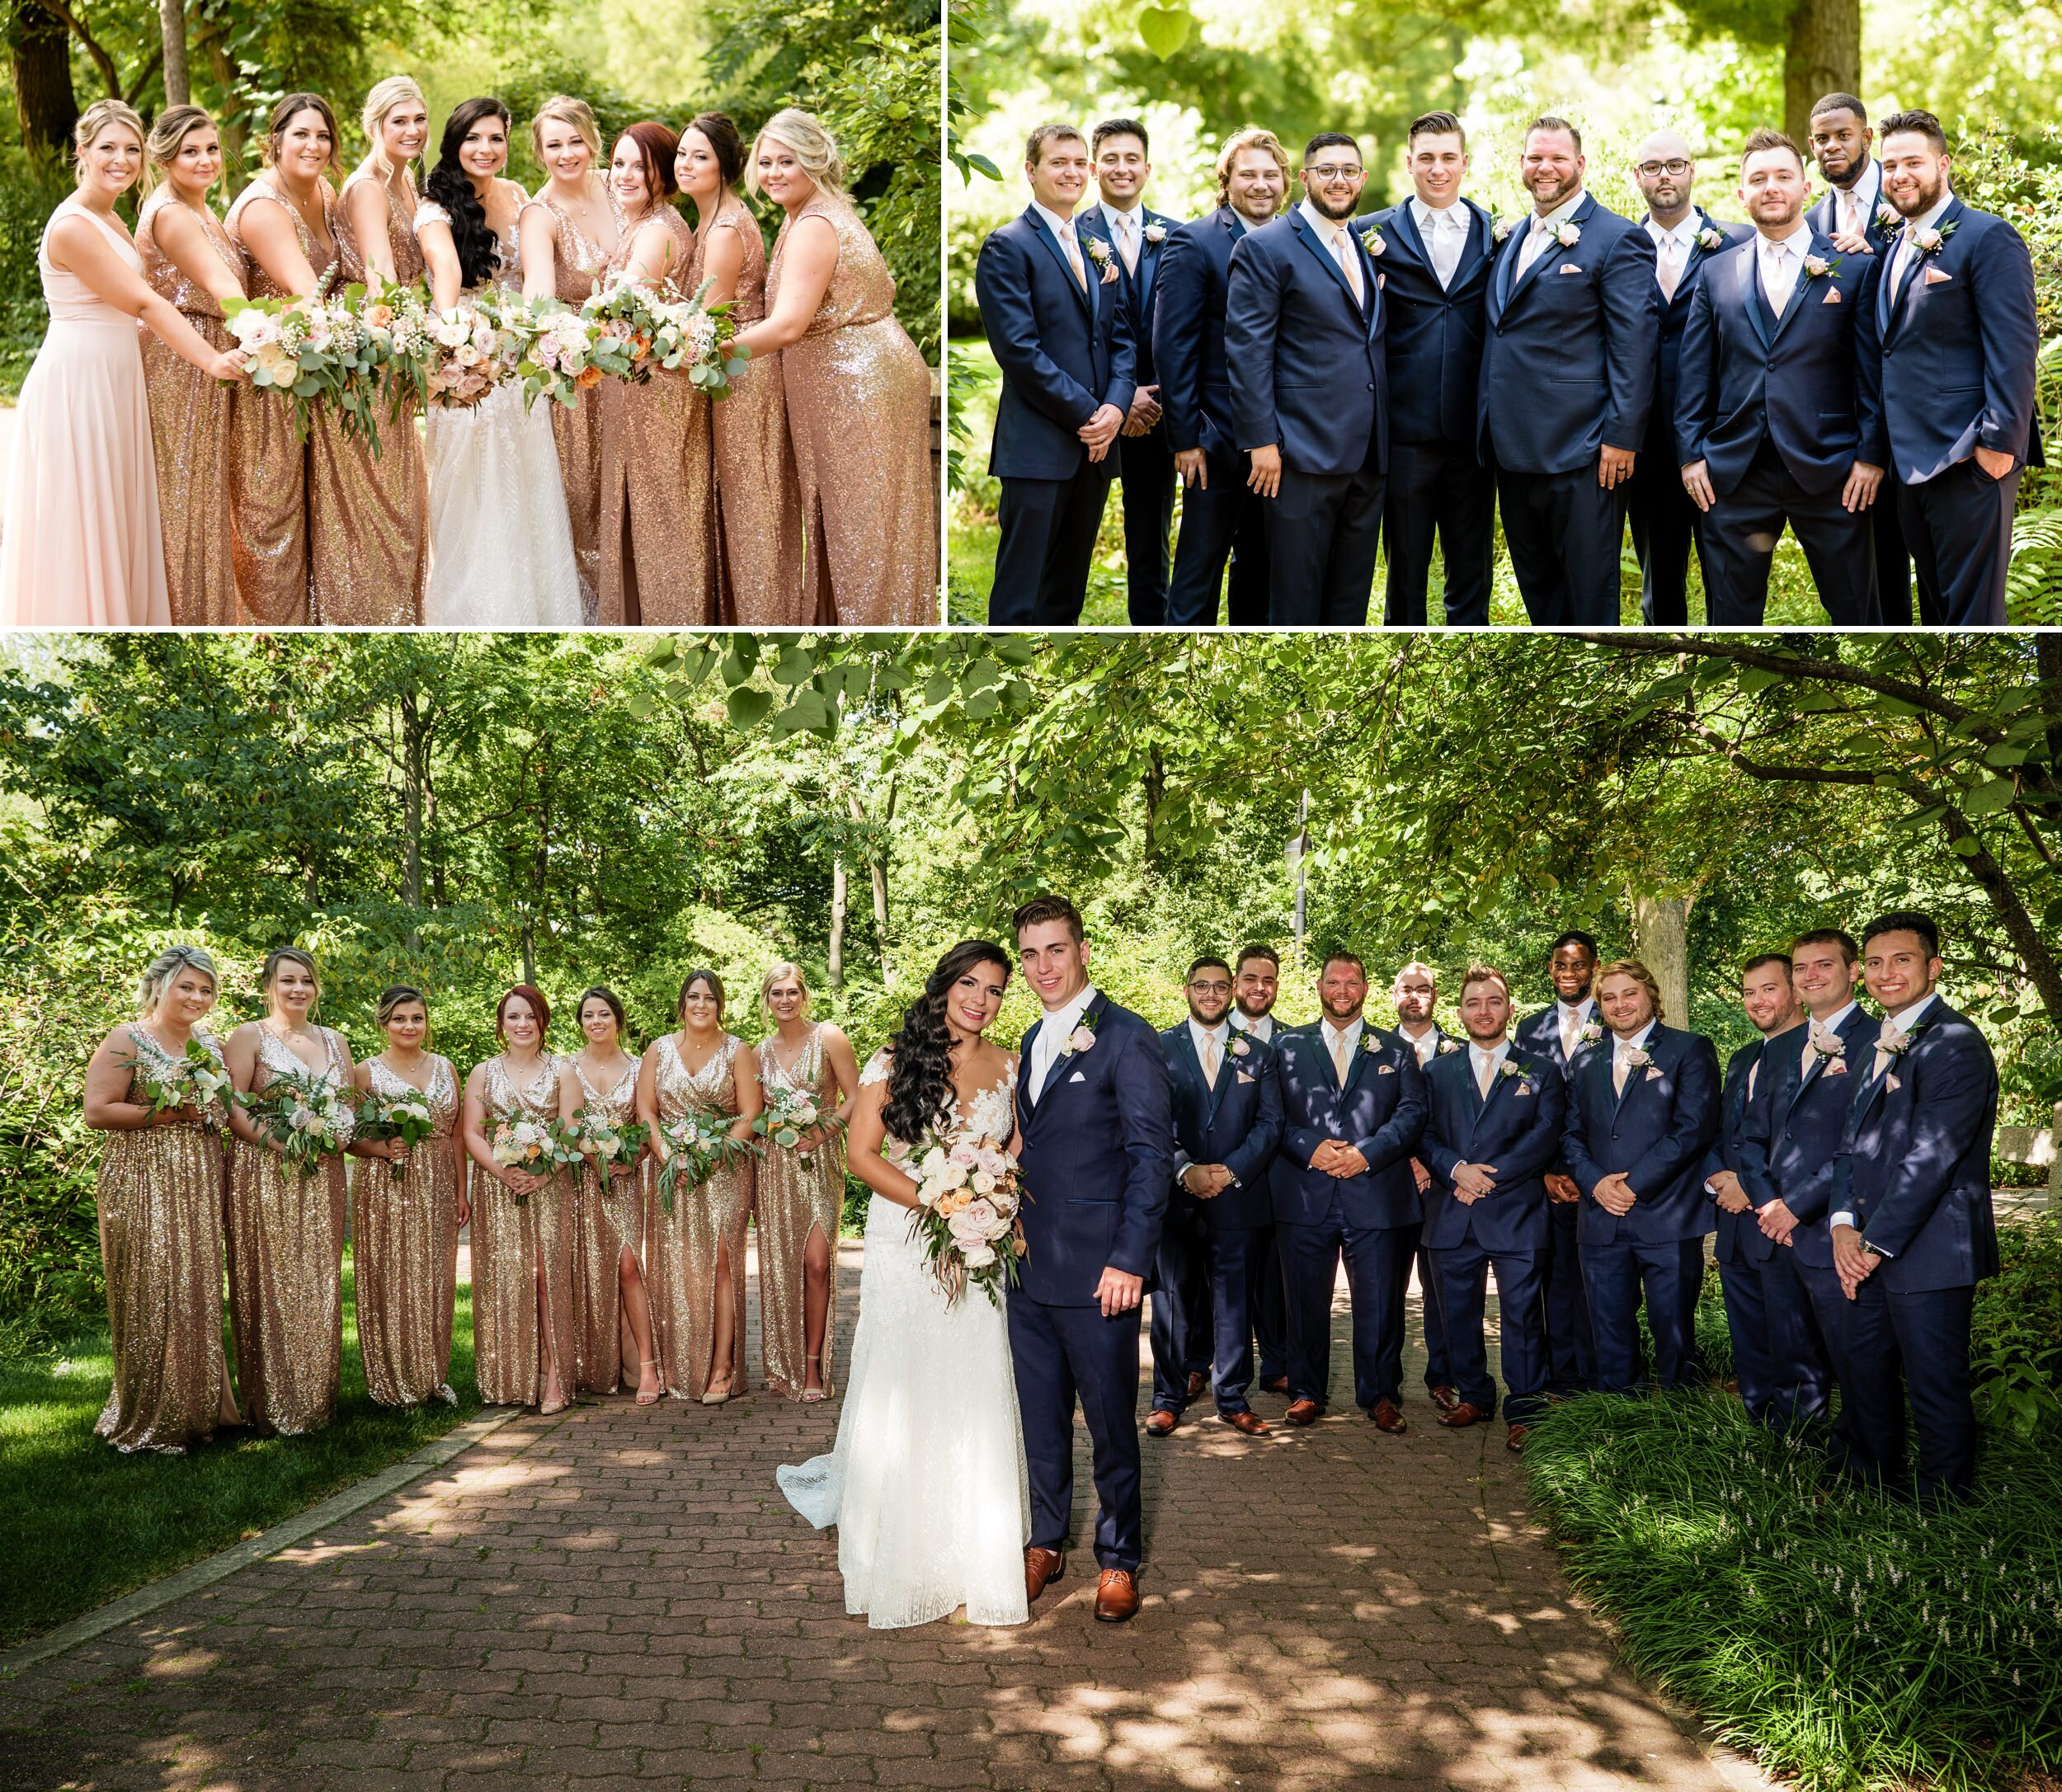 Wedding party group photos in Naperville, Illinois.